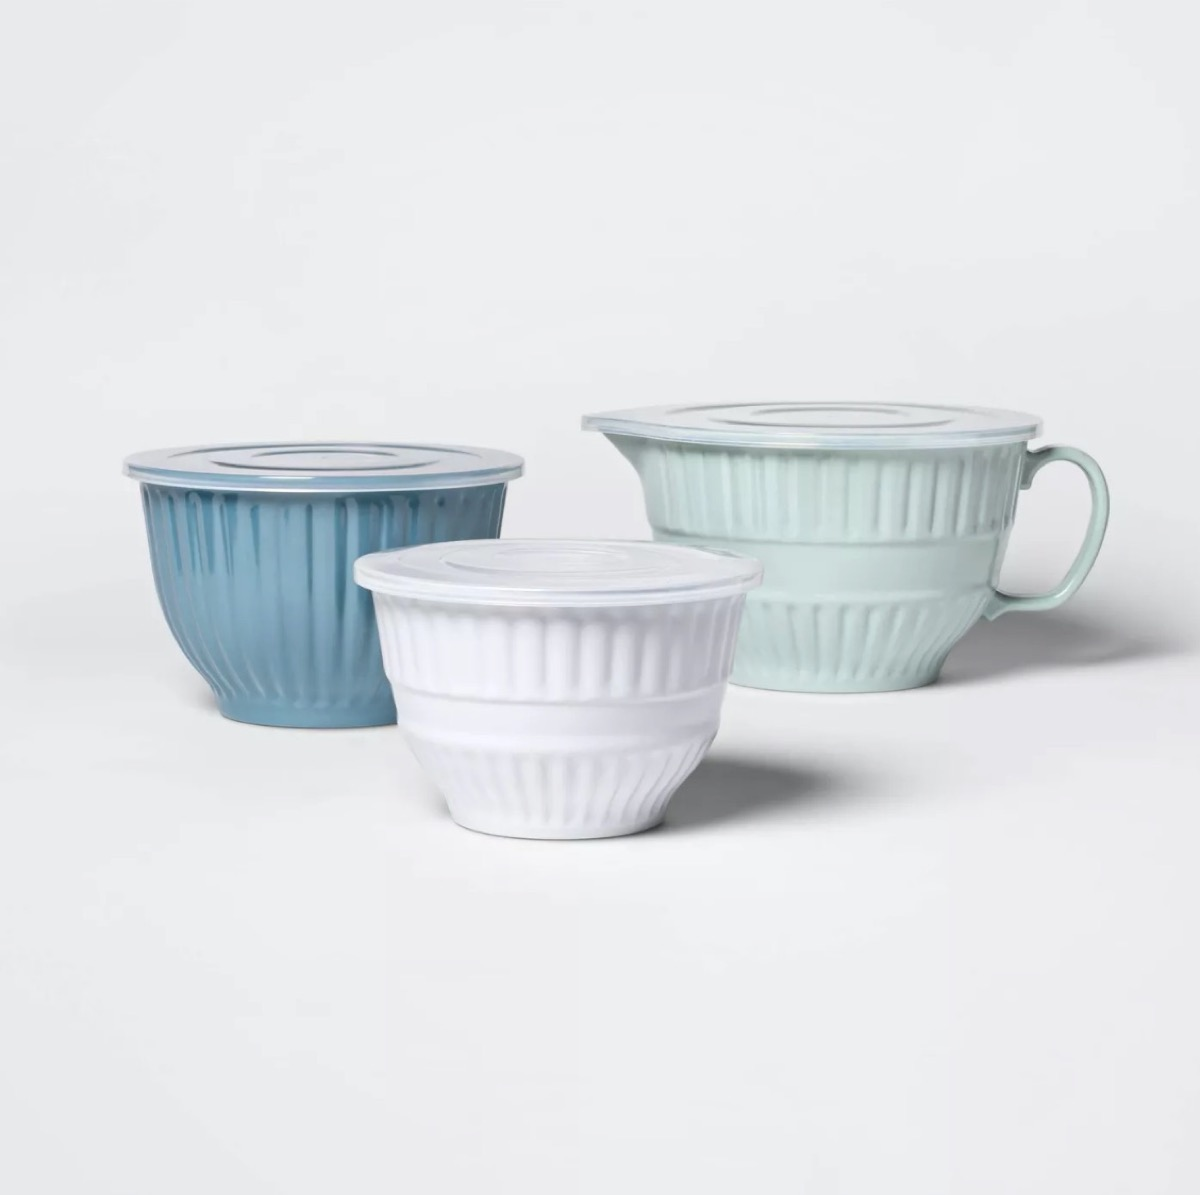 three ceramic bowls in shades of blue and white